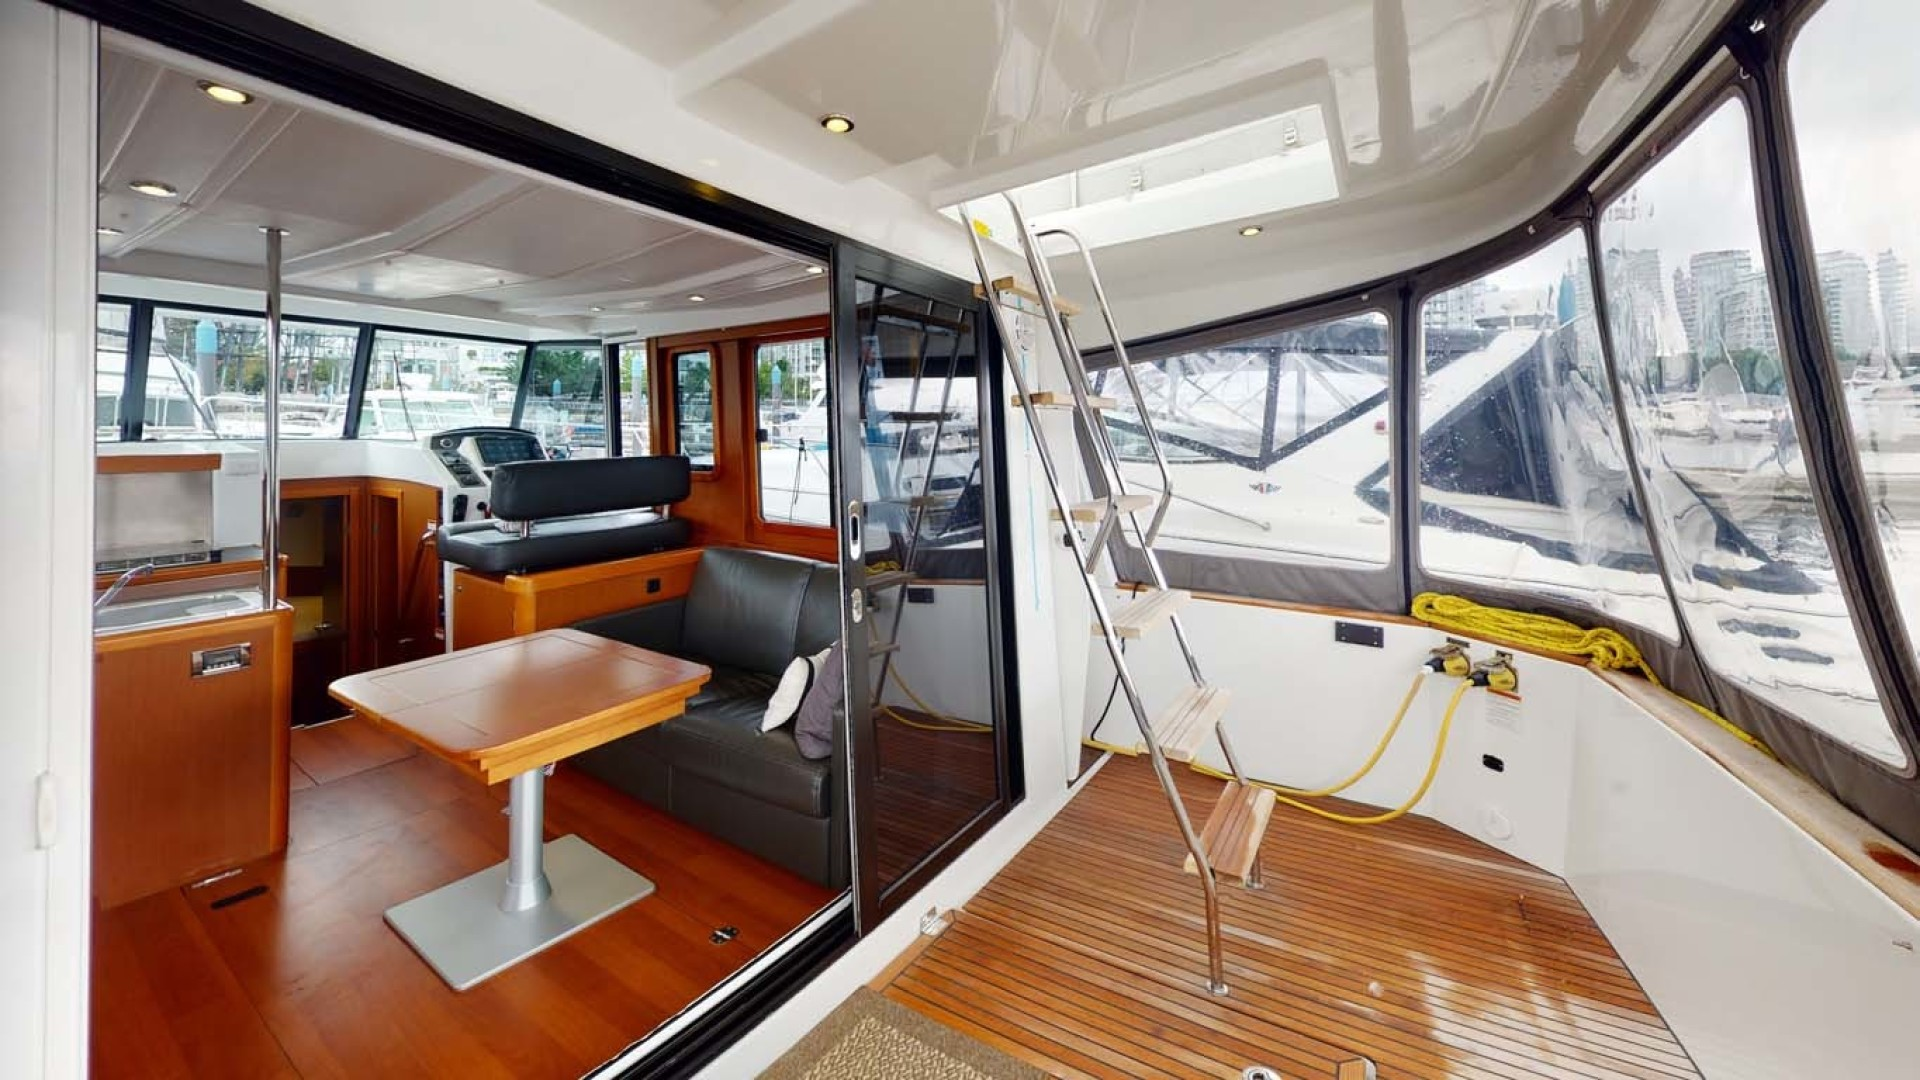 Beneteau-Swift Trawler 34 2015-Bon Sejour Vancouver, BC-Canada-Dining Table-1441076 | Thumbnail